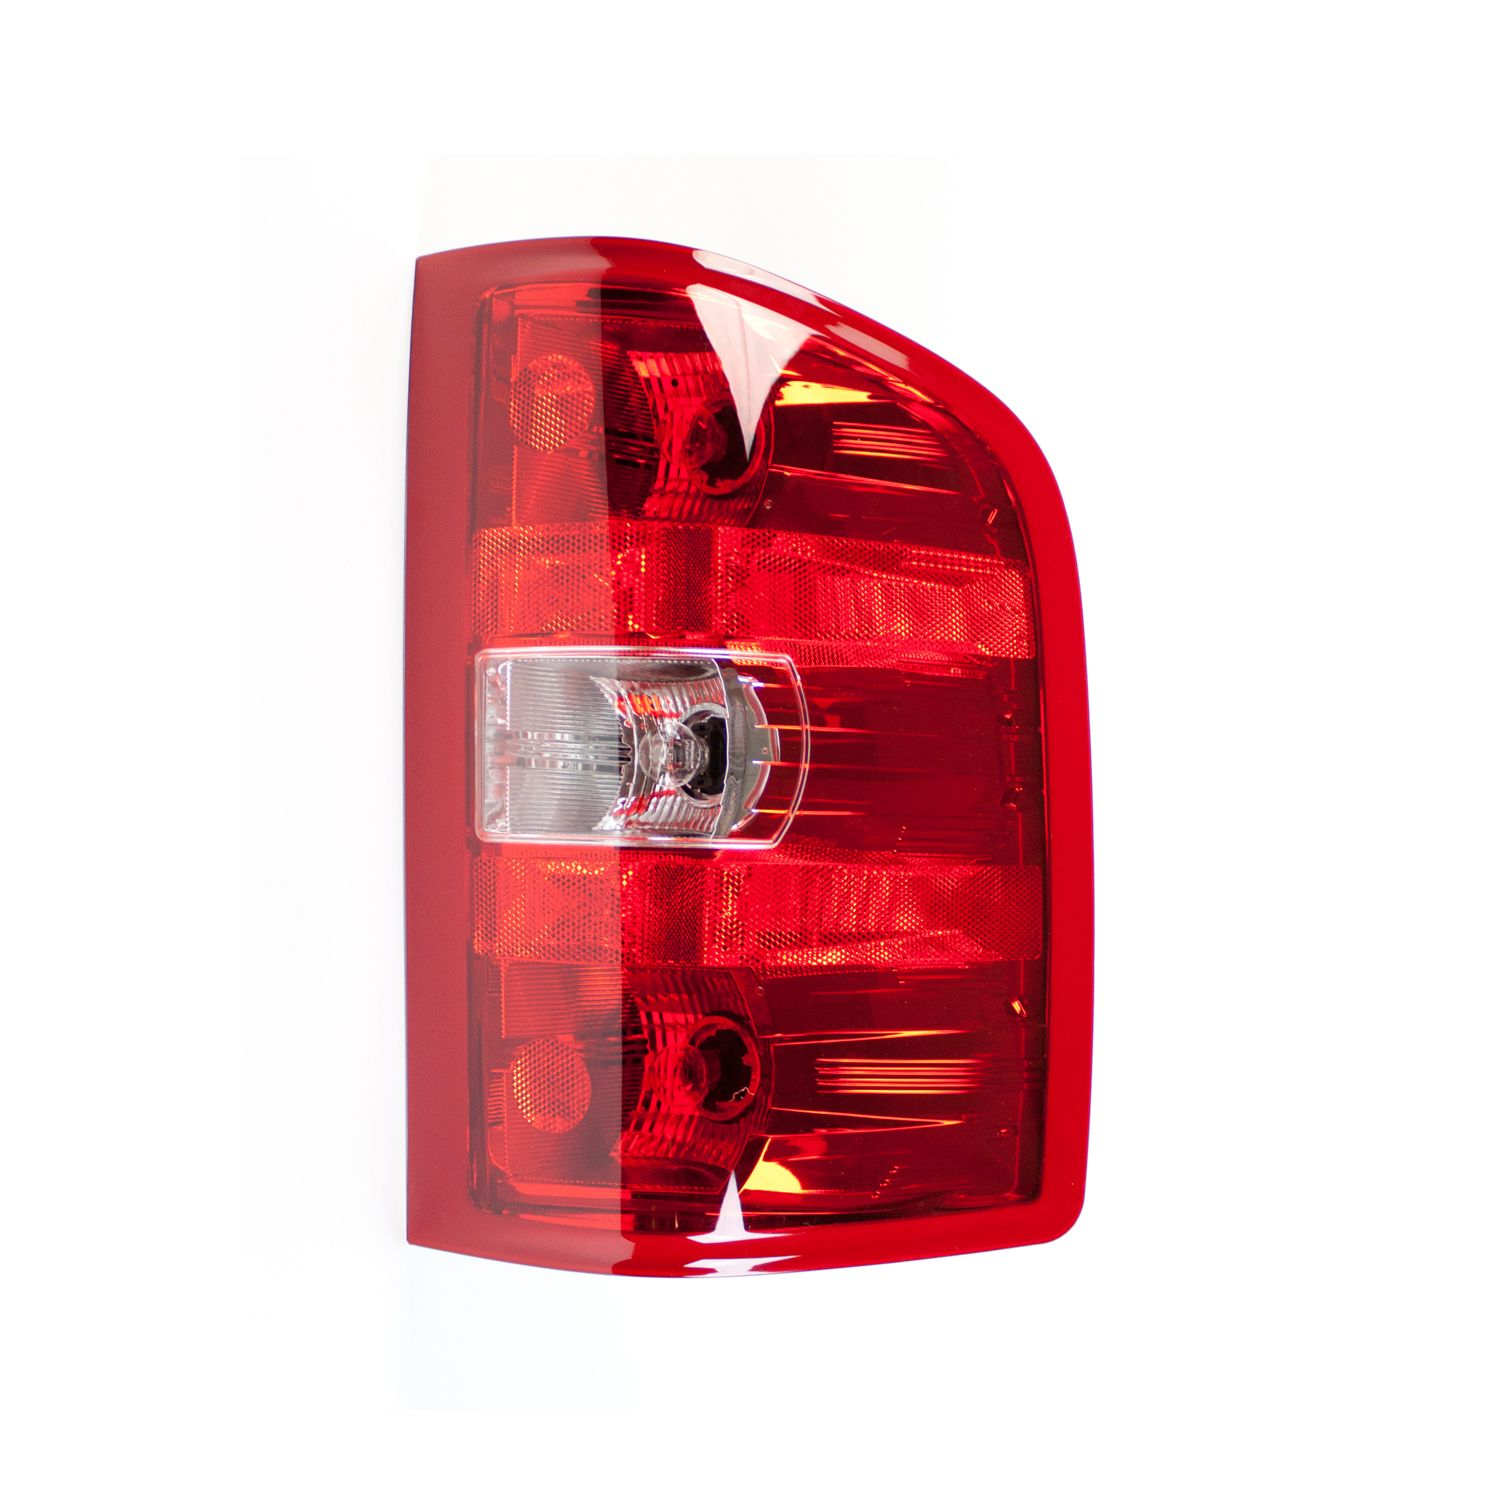 TYC 11-6221-00 Chevrolet Silverado Passenger Side Replacement Tail Light Assembly